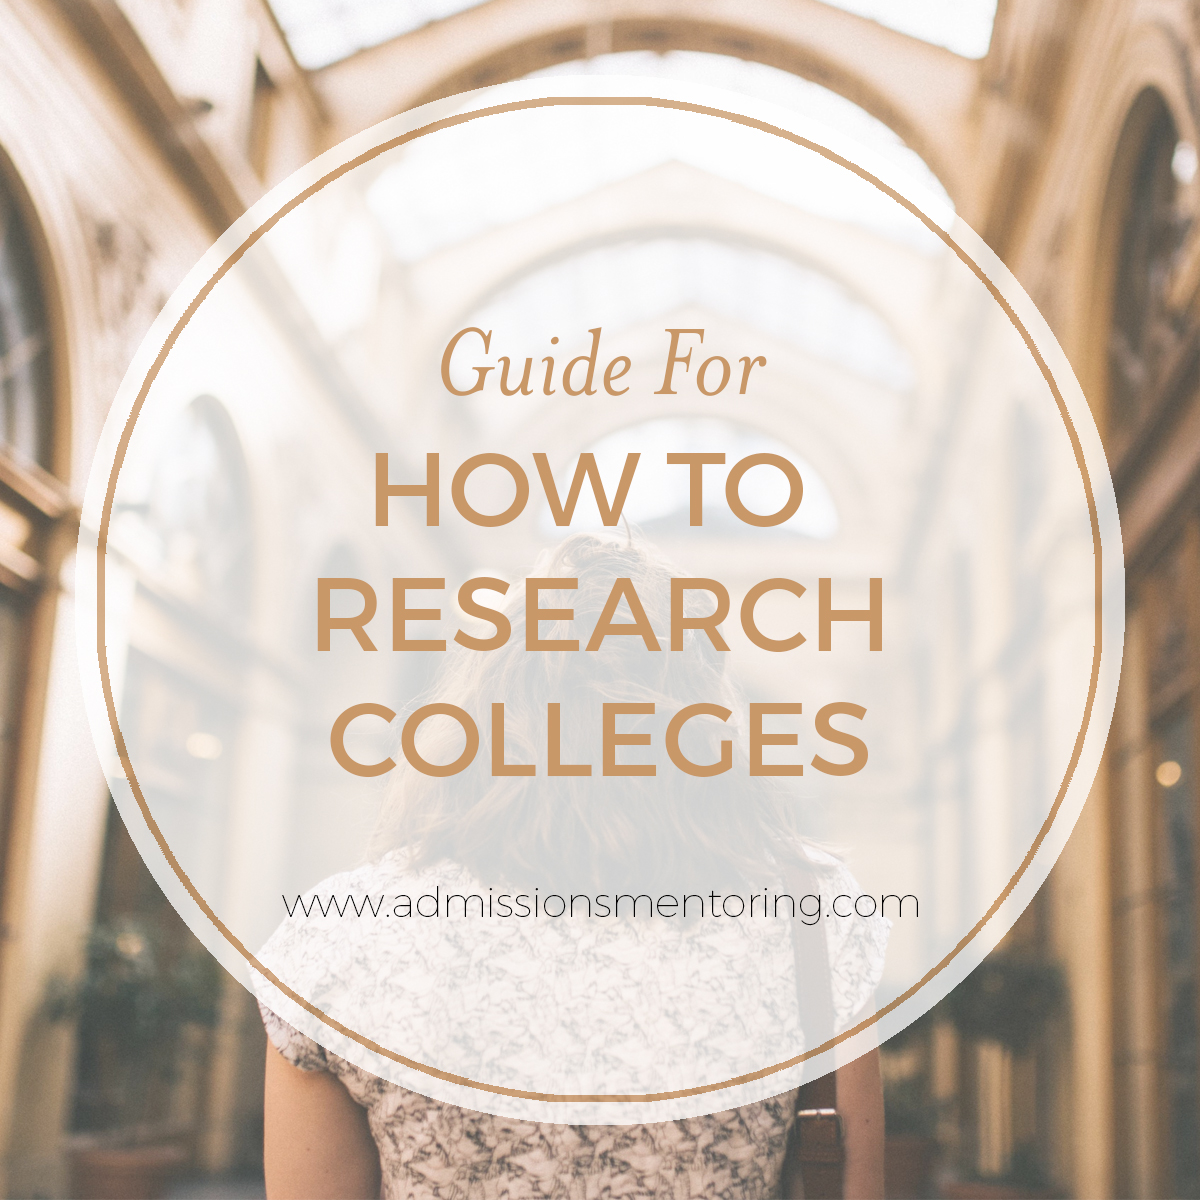 Admissions-Mentoring-Real-Guide-To-Research.jpg